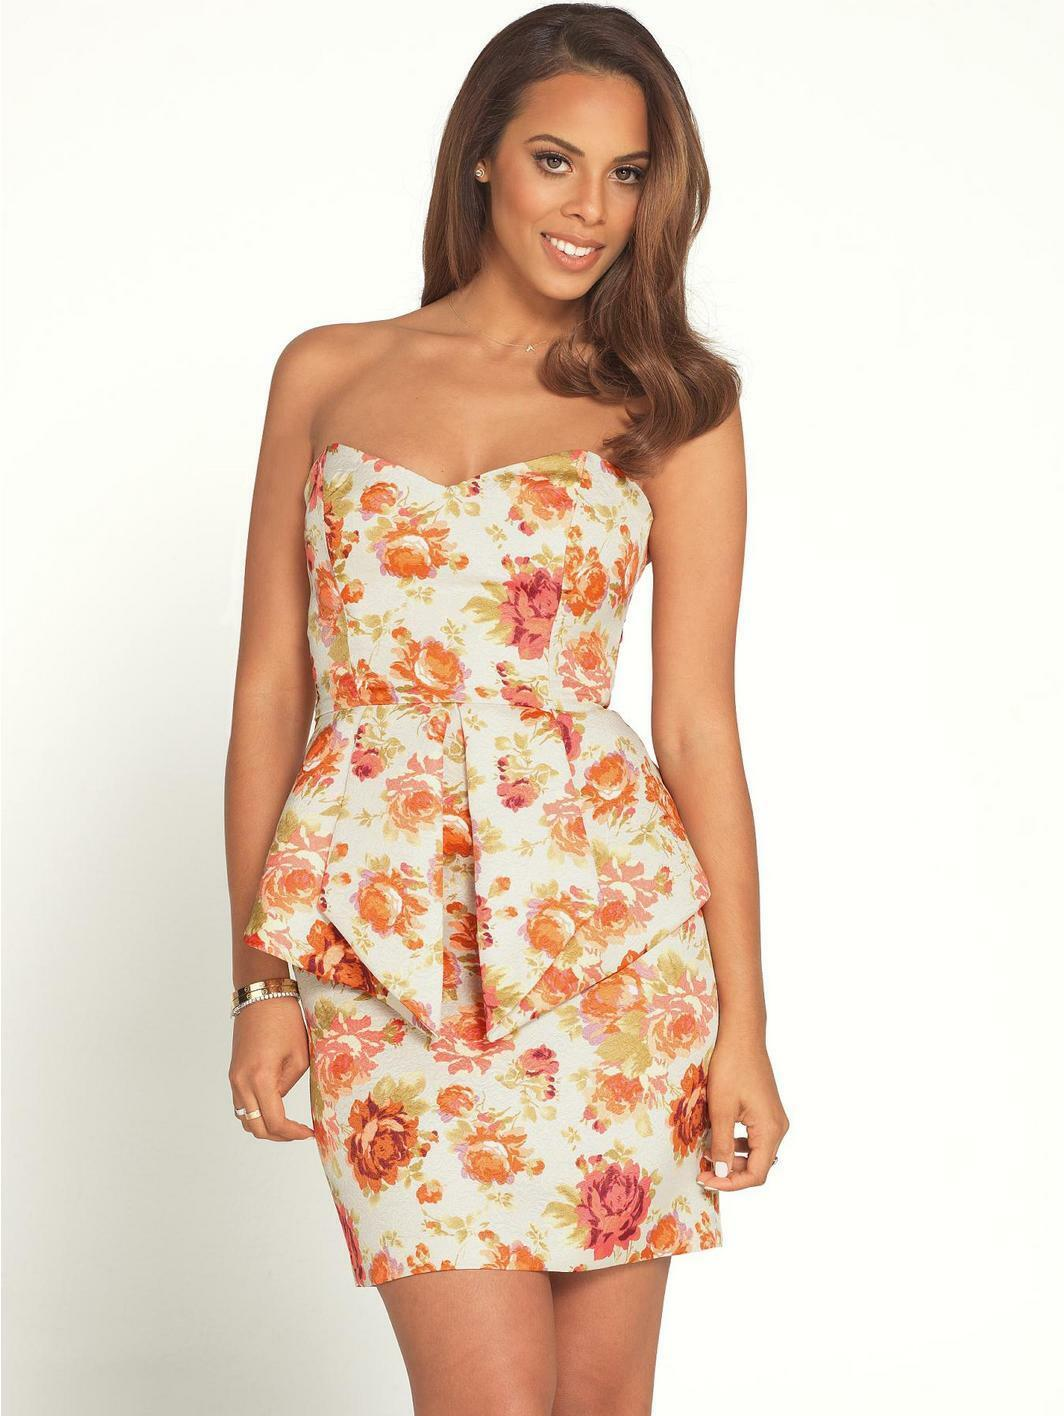 BNWT ROCHELLE HUMES FLORAL JACQUARD PEPLUM  DRESS  SIZE 12 RRP